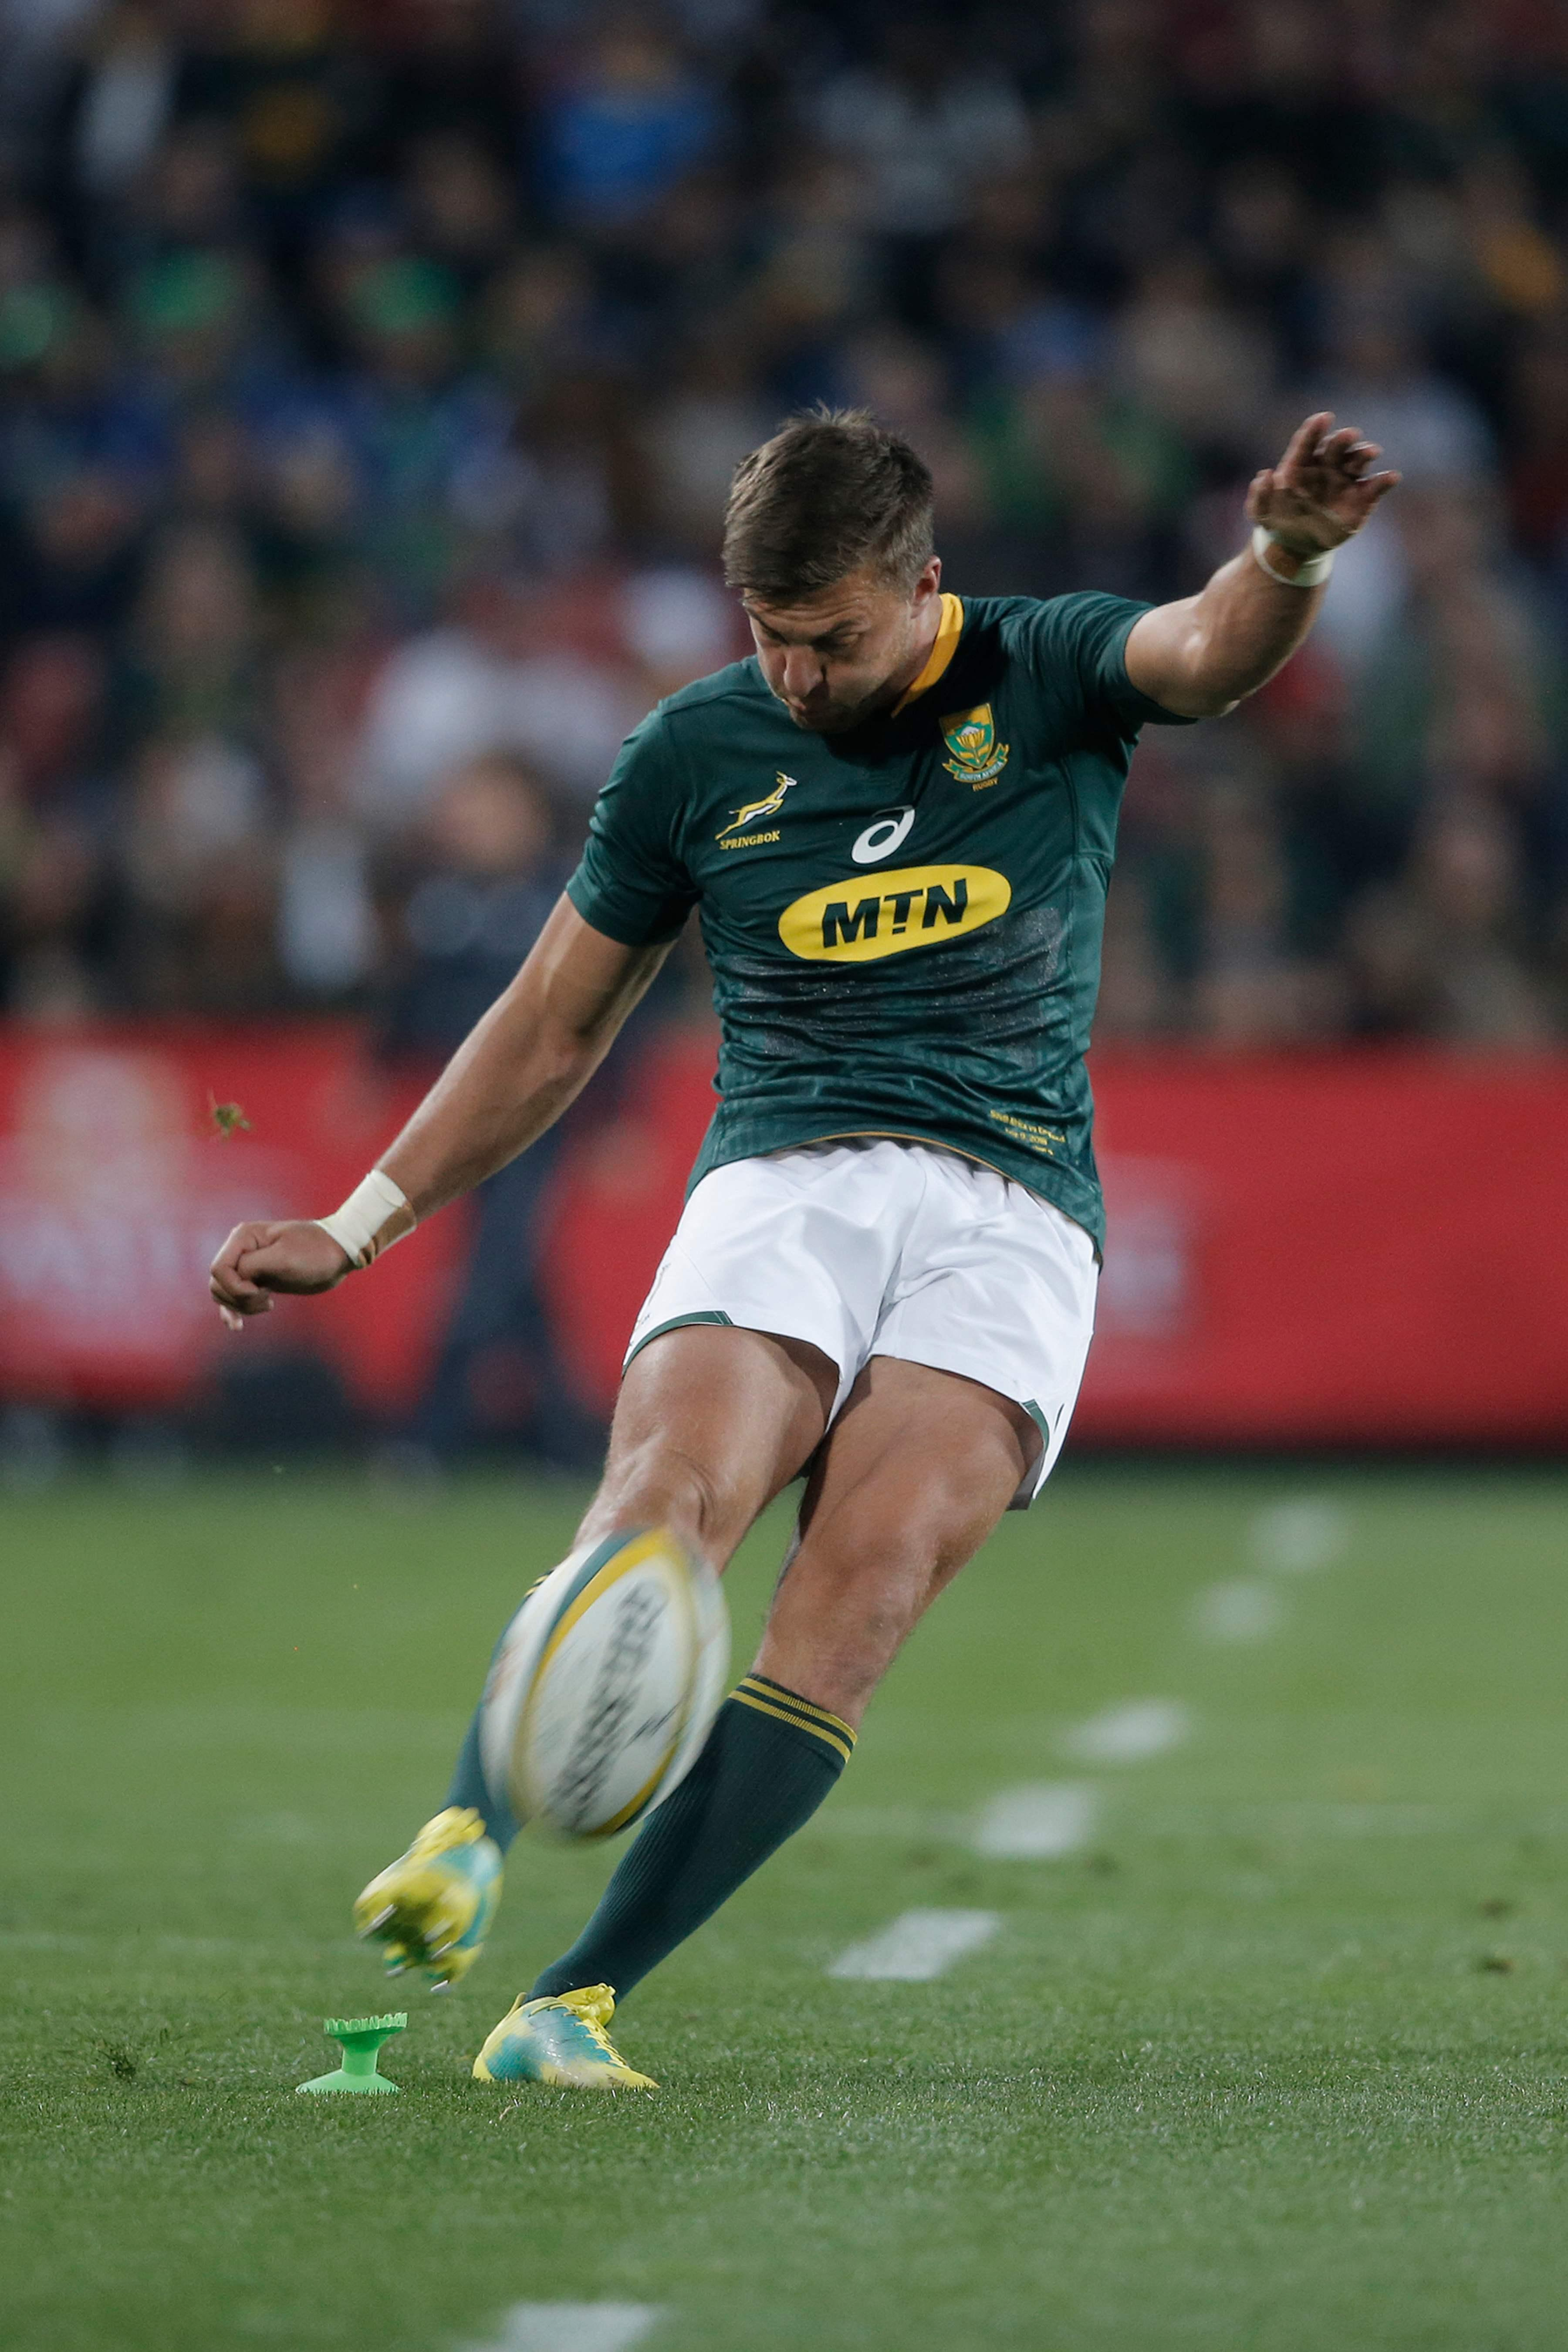 Fly-half Handre Pollard scored three penalties for South Africa as they won 42-39